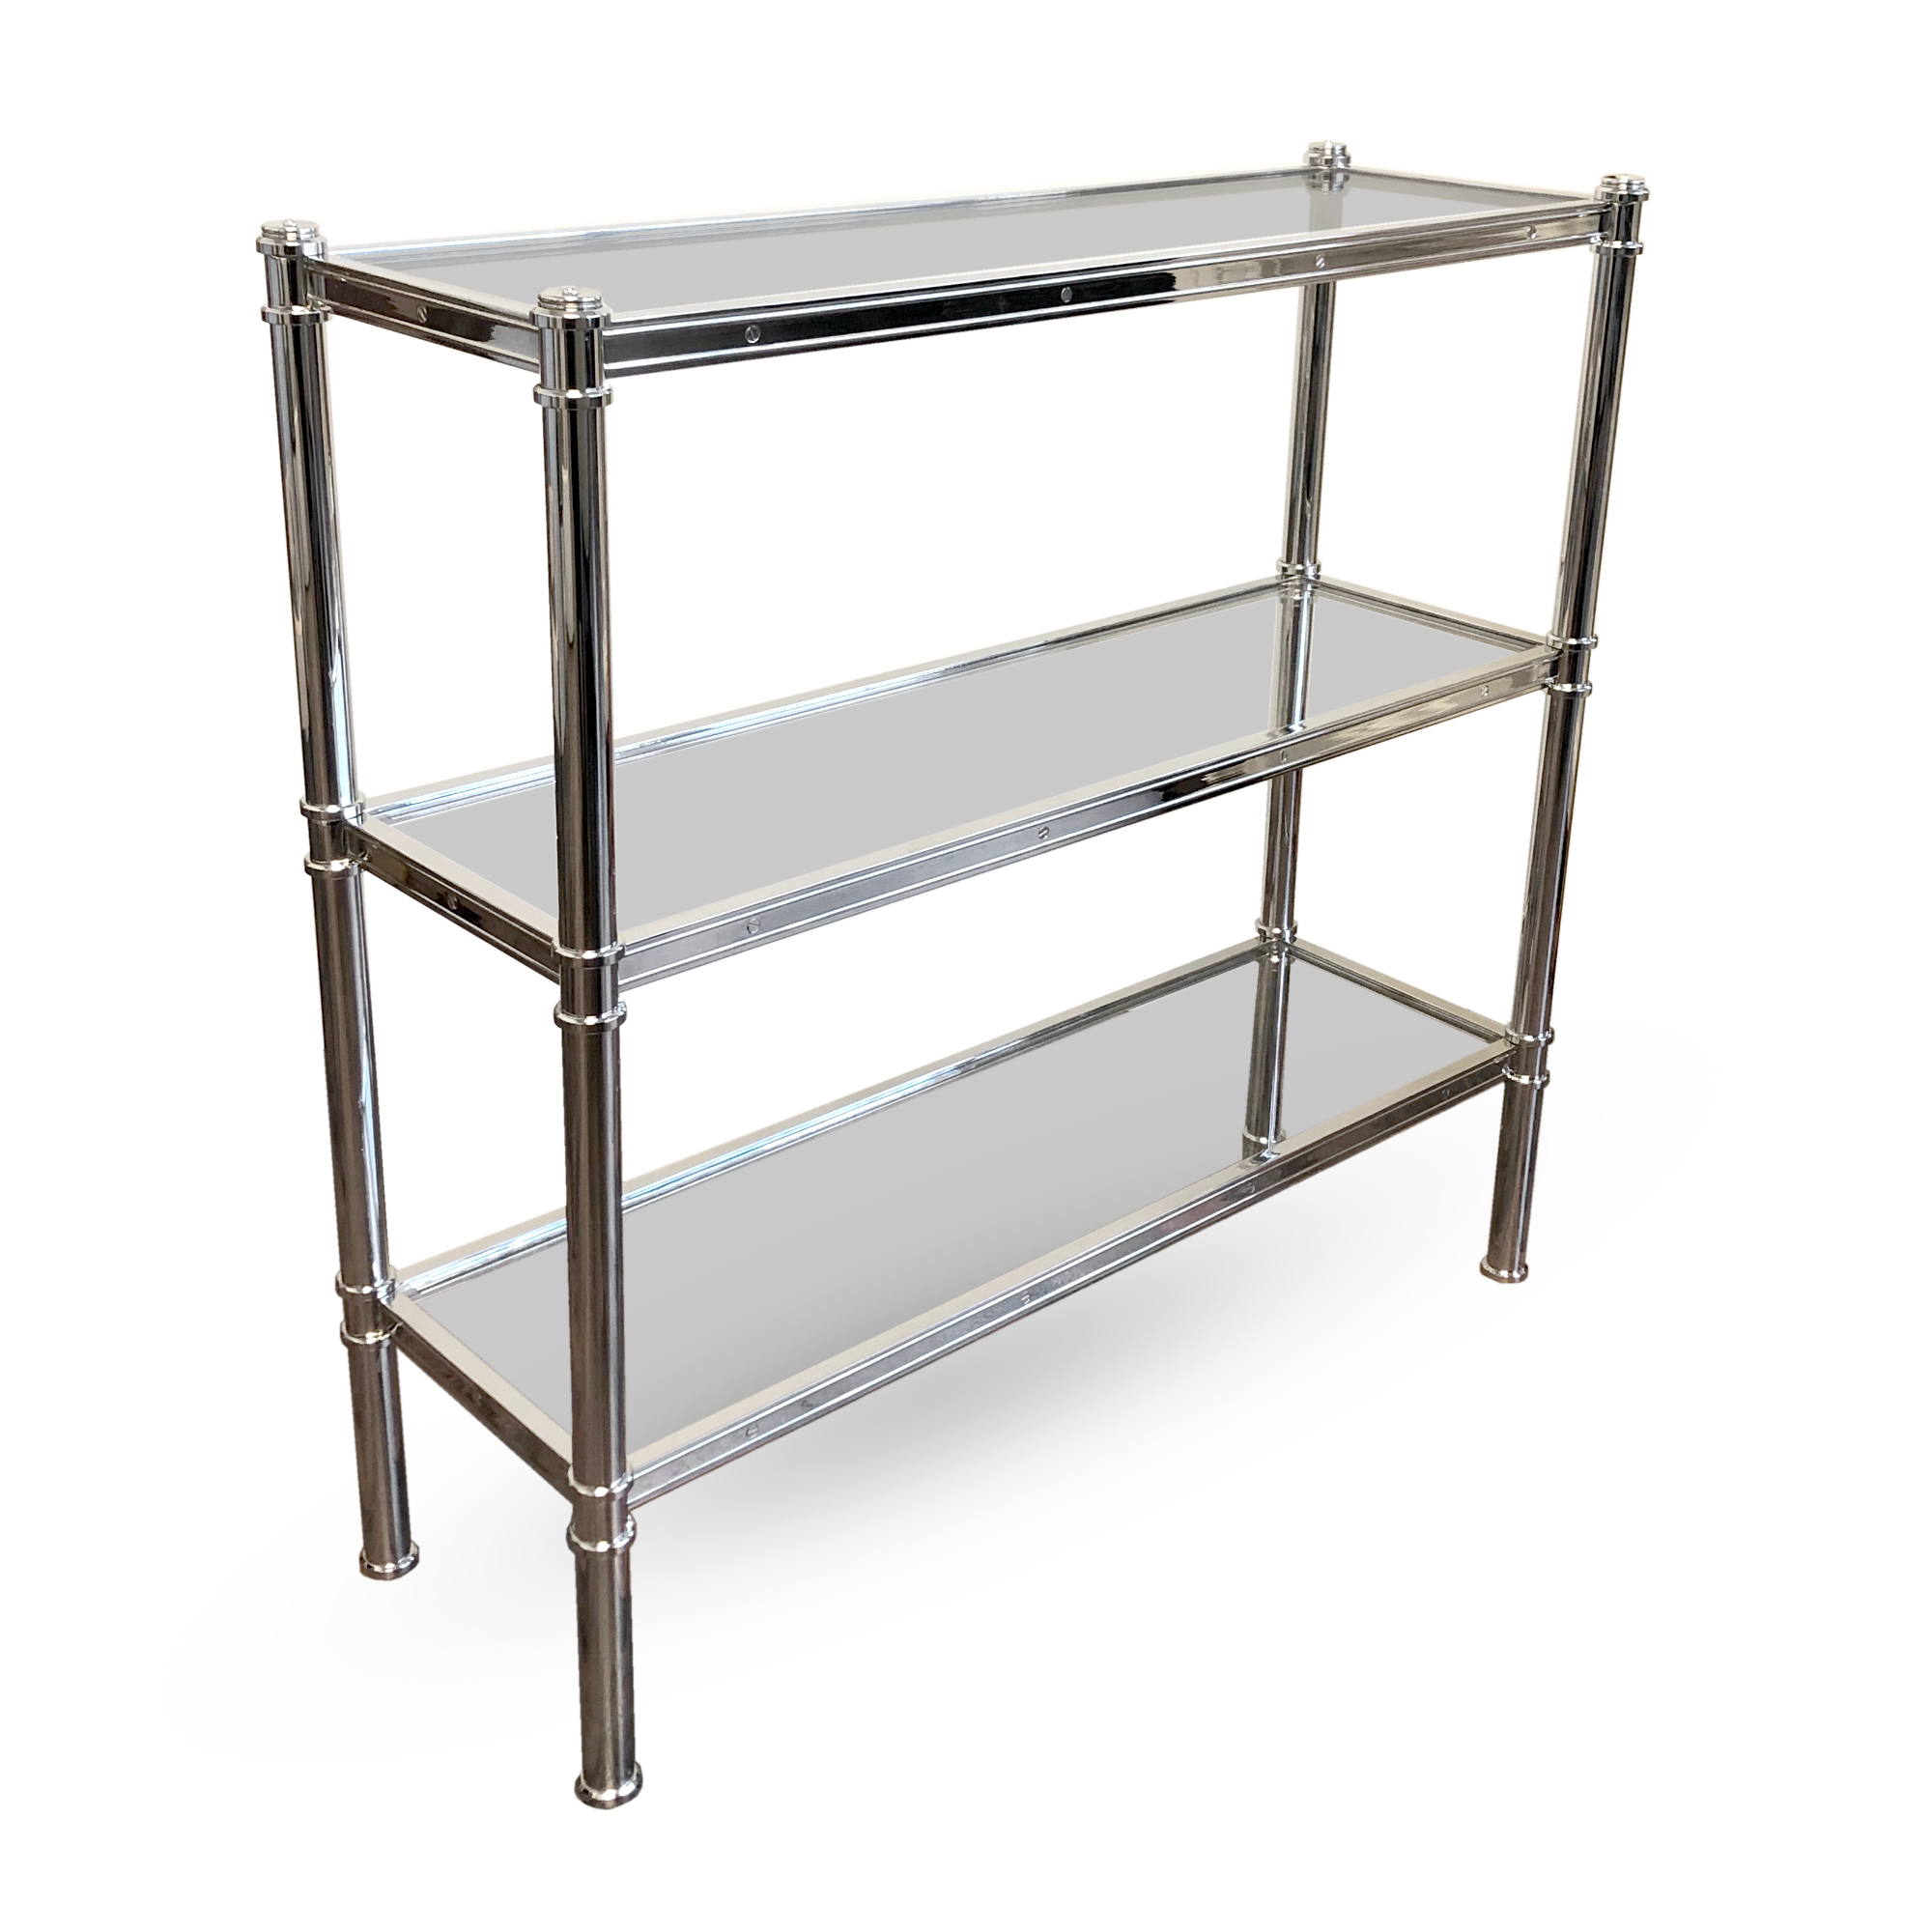 A low version of the Cole Porter etagere with glass shelves by Victoria & Son